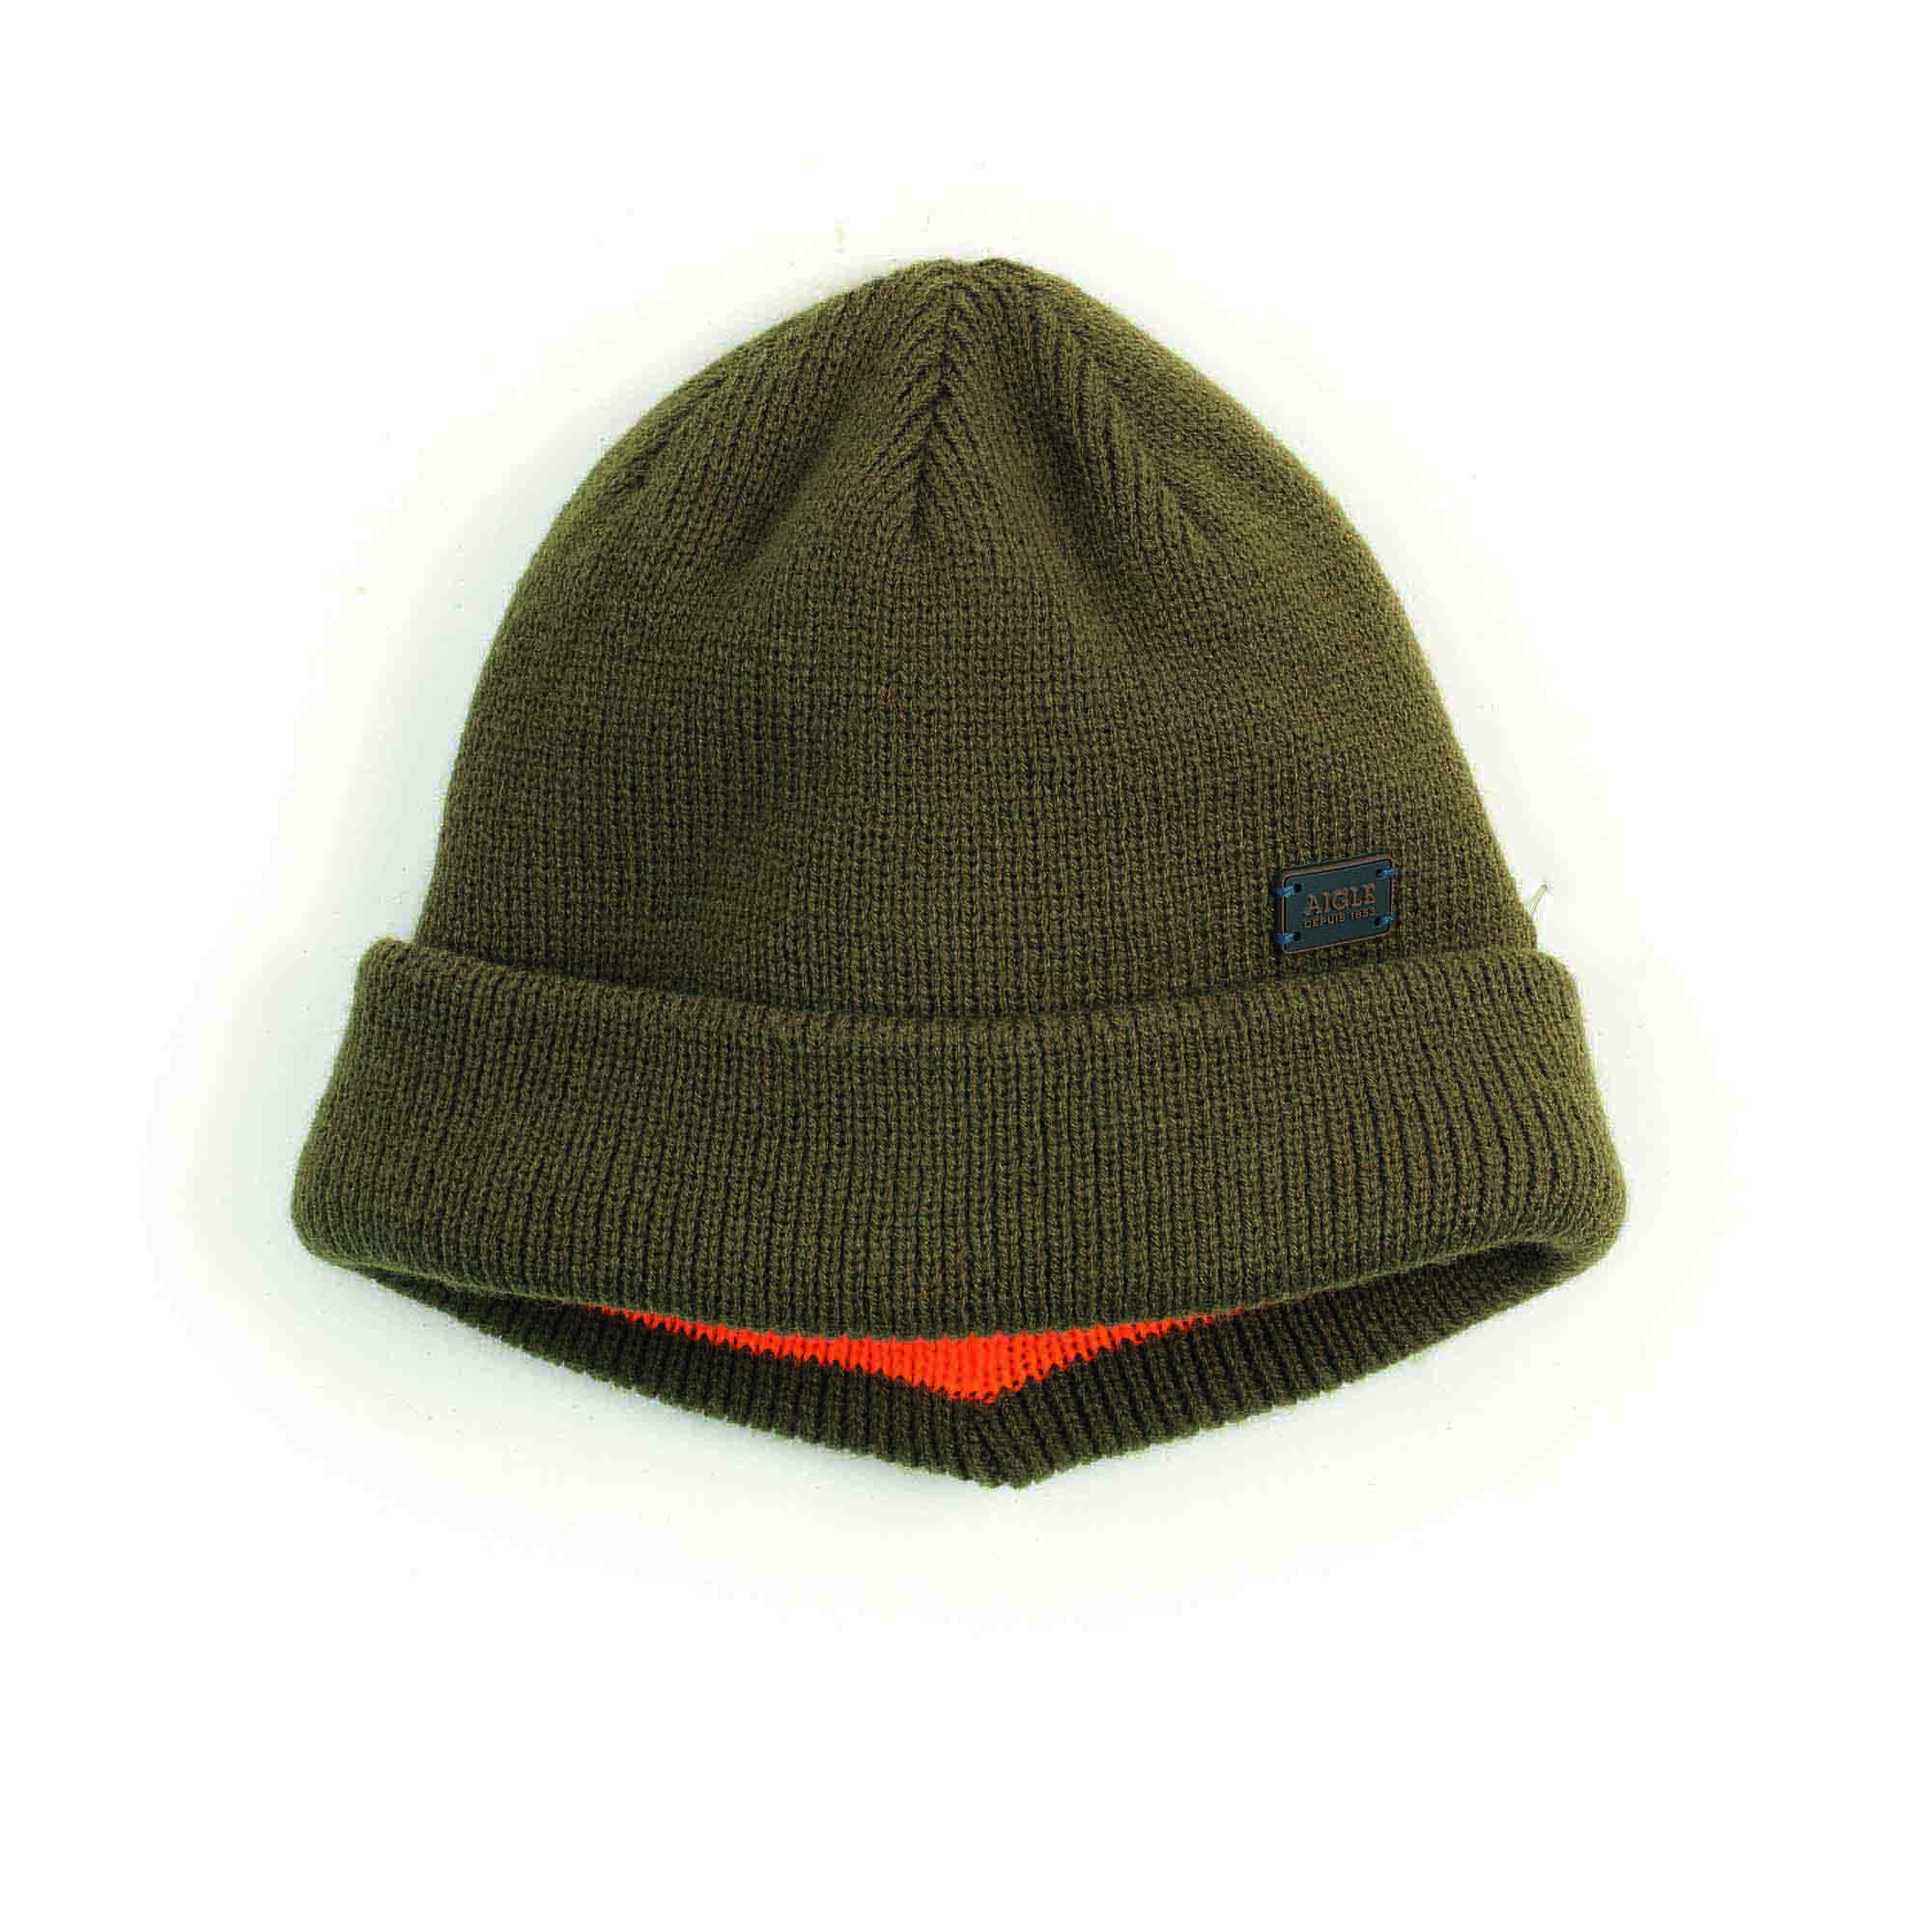 b12d2f462eb DONZY | Reversible hunting beanie Bronze/fluo | Aigle | AIGLE